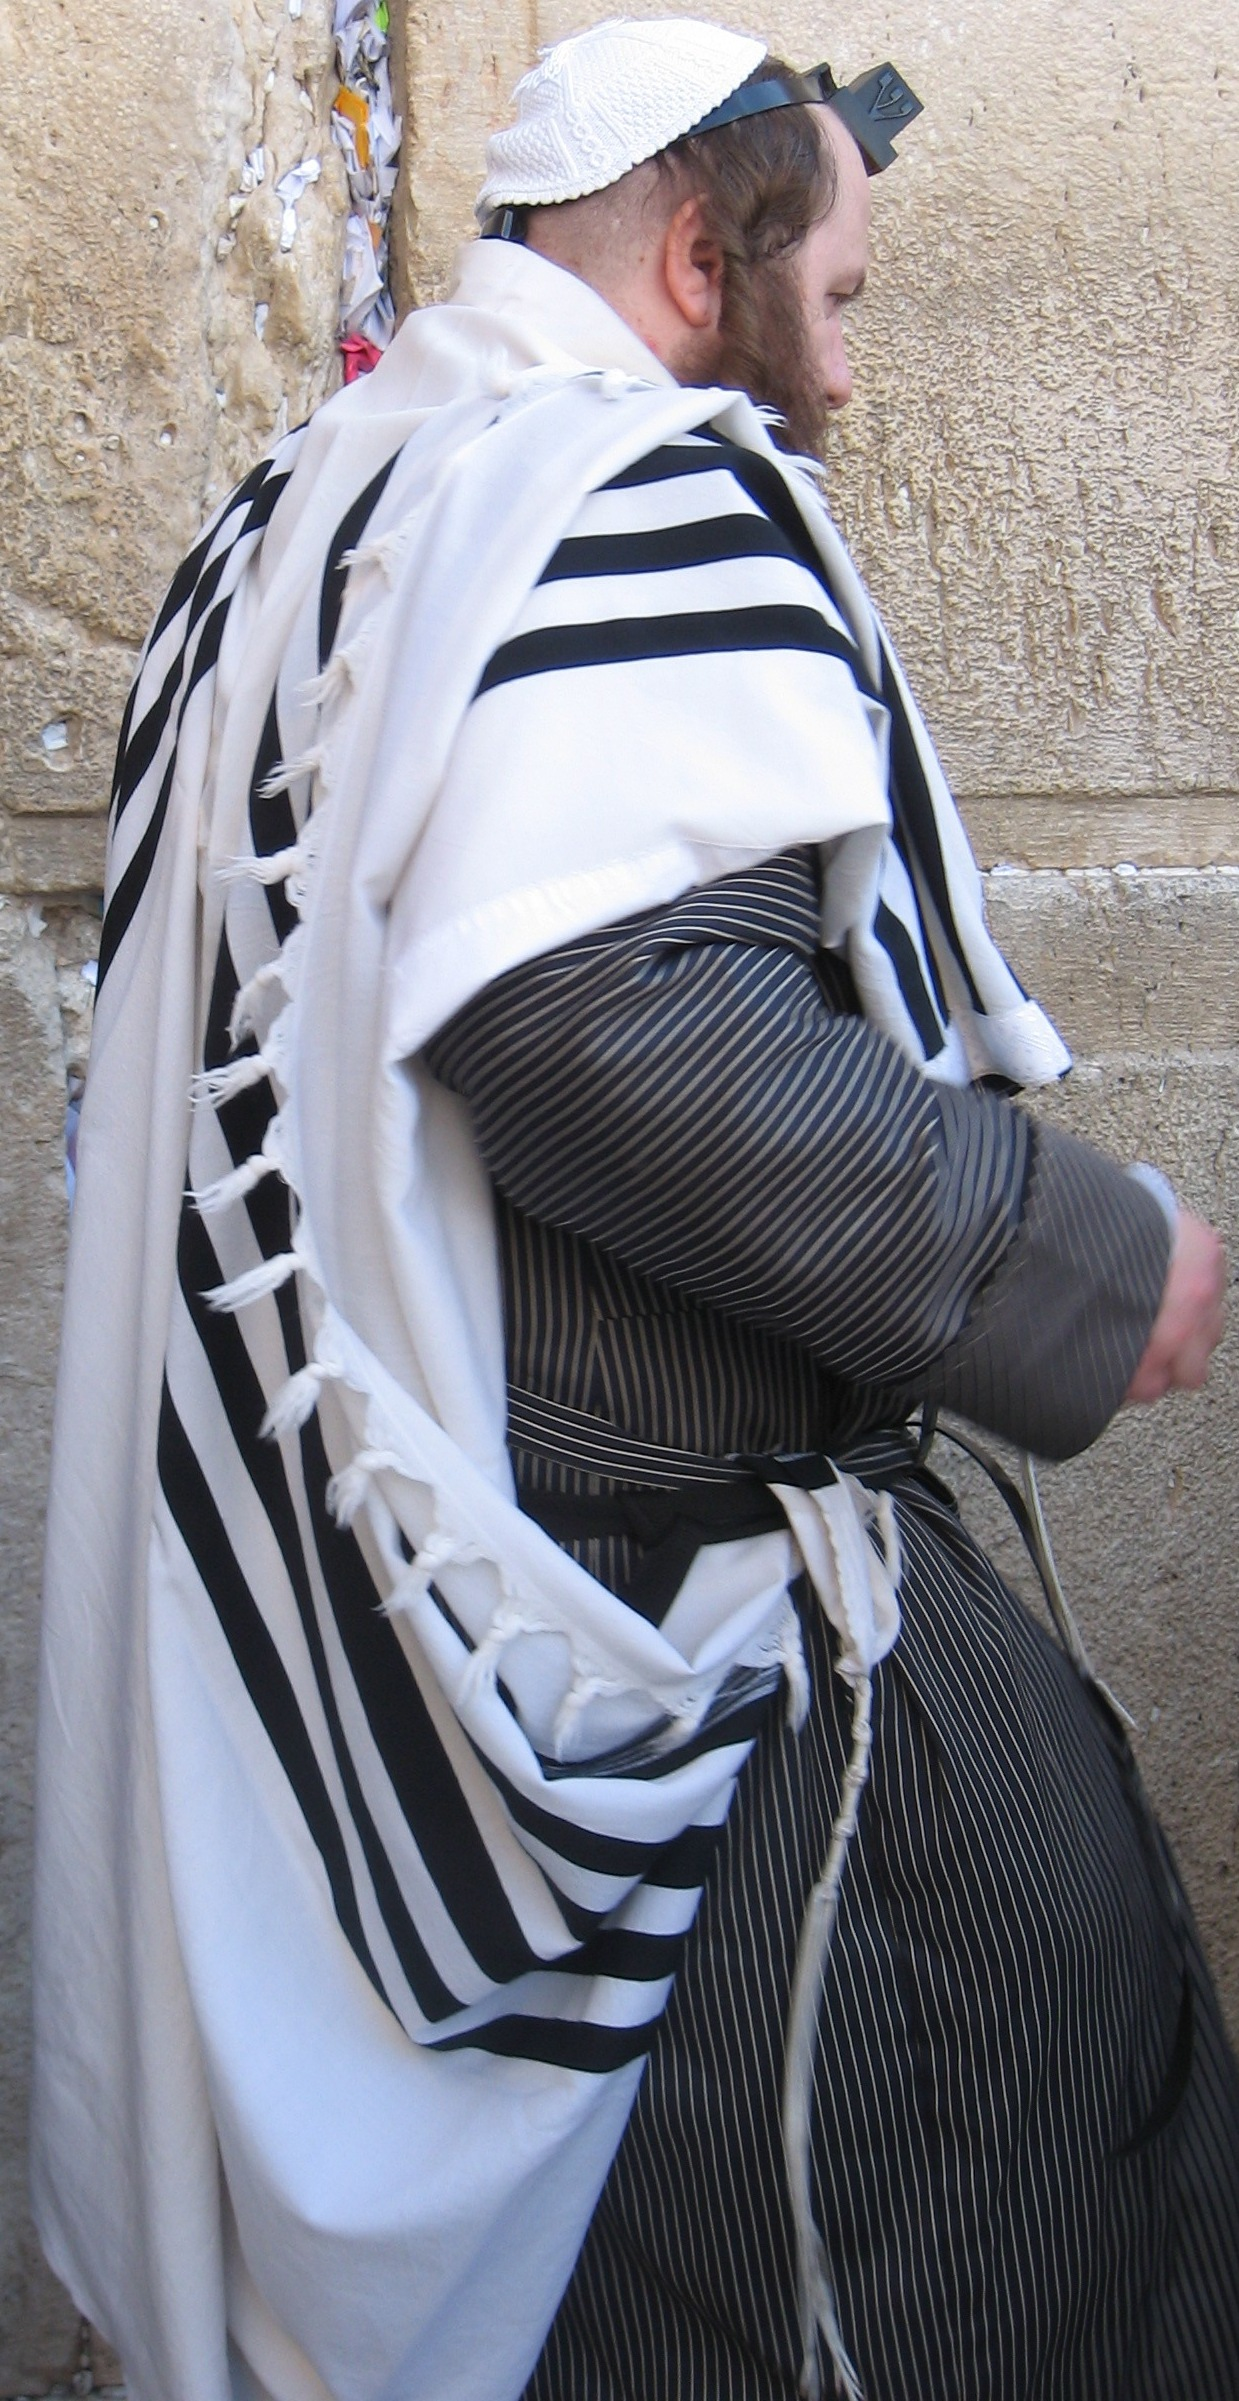 Creative  Jpeg 236 Kb File Jewish Orthodox Dress Code9 Jpg Wikimedia Commons